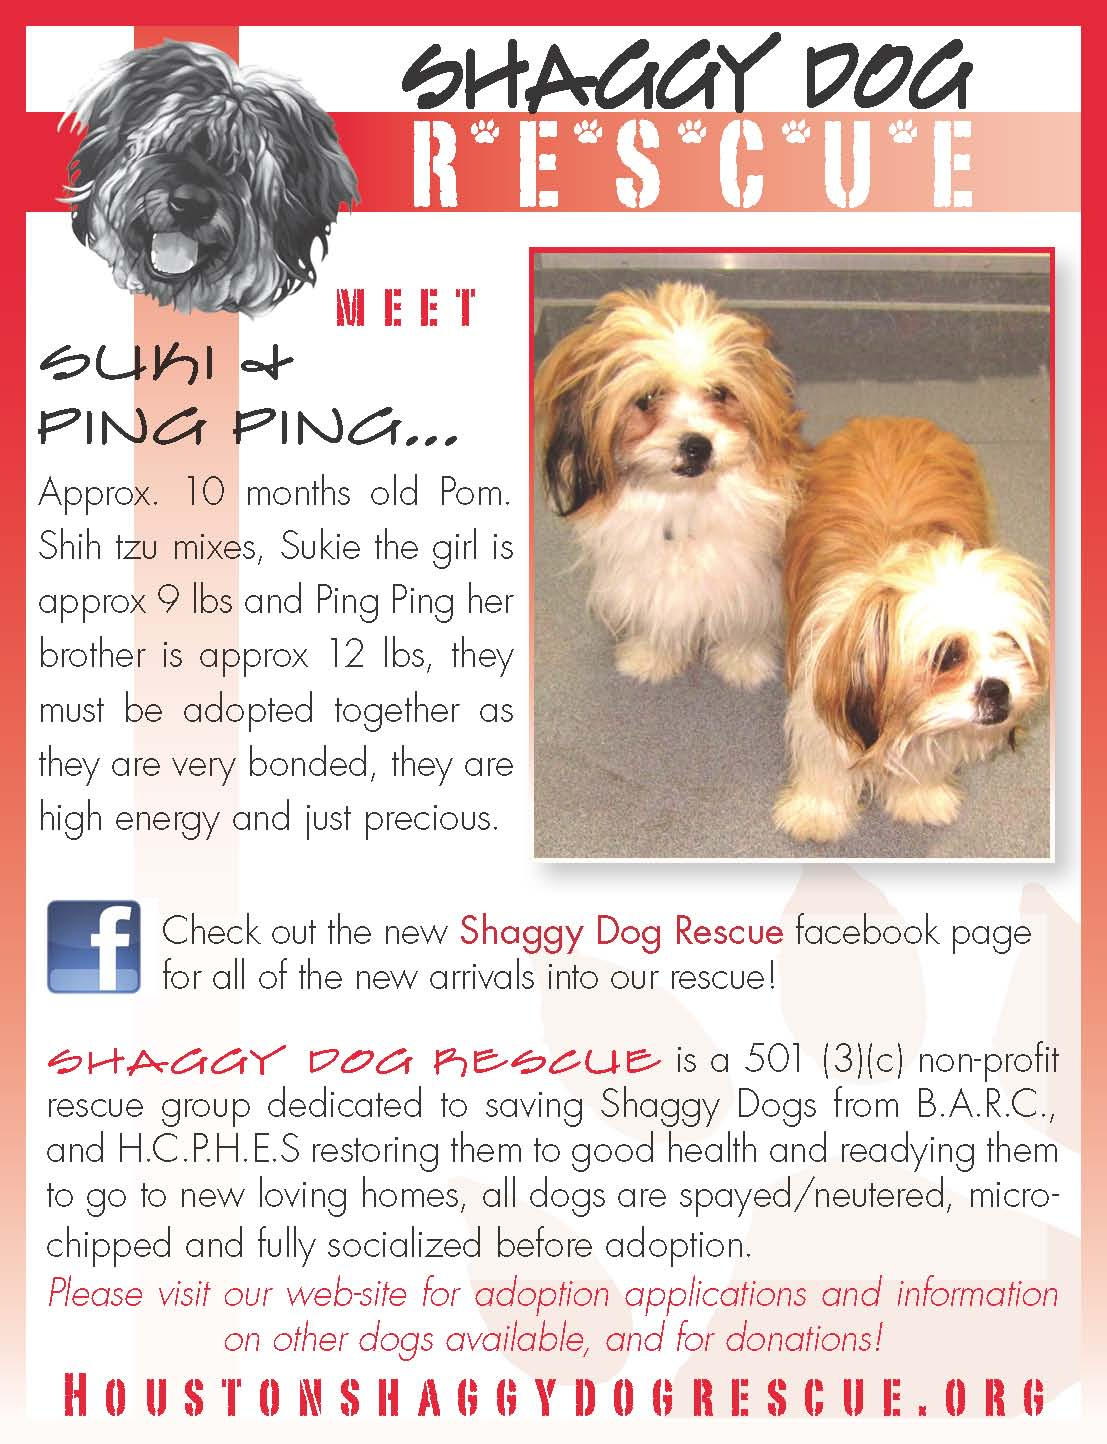 Shaggy Dog Rescue: These 2 Dogs Need A Home